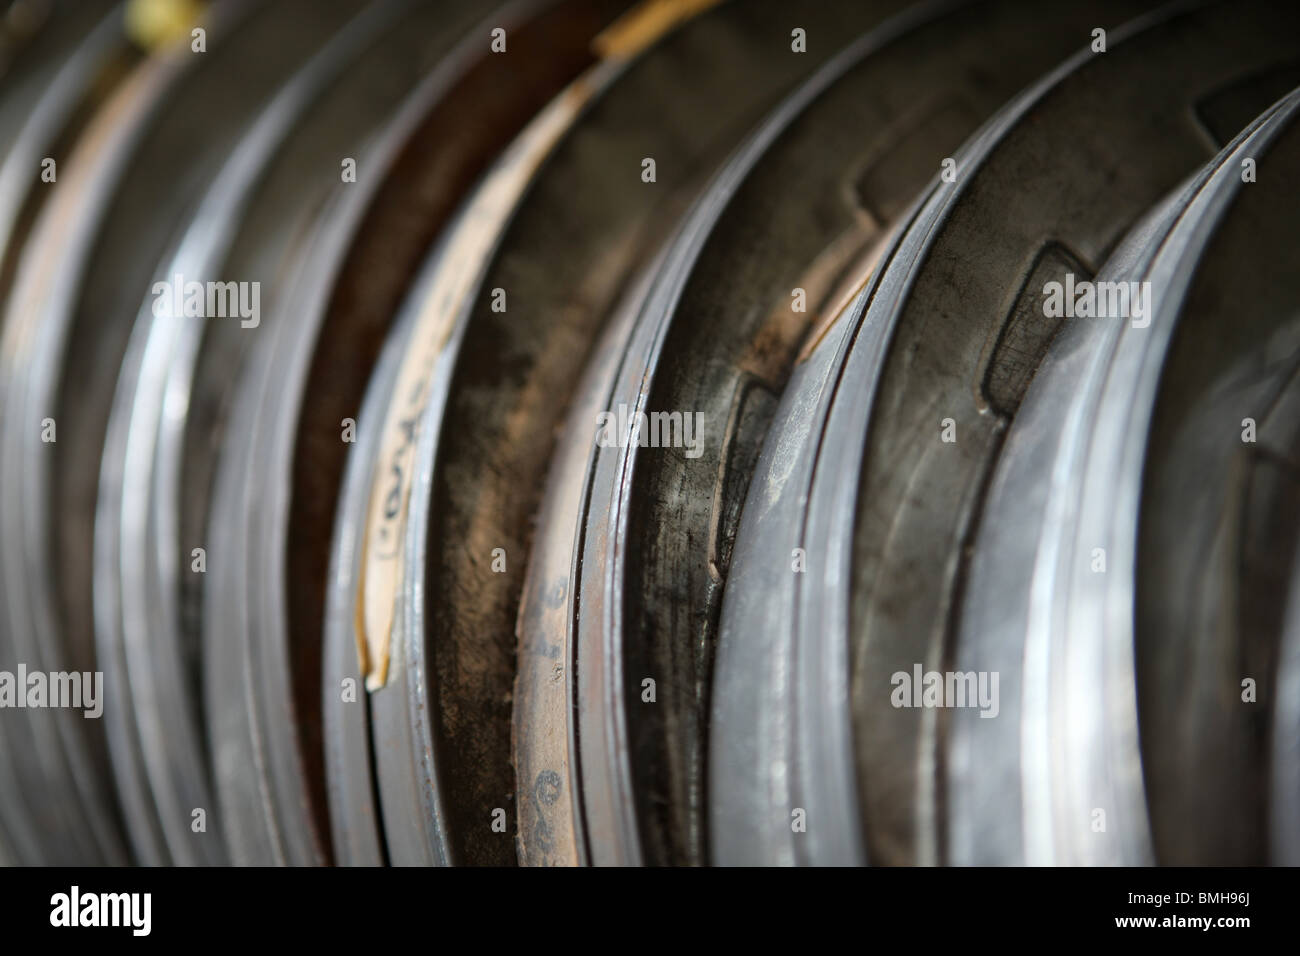 film reels, film, cinema - Stock Image